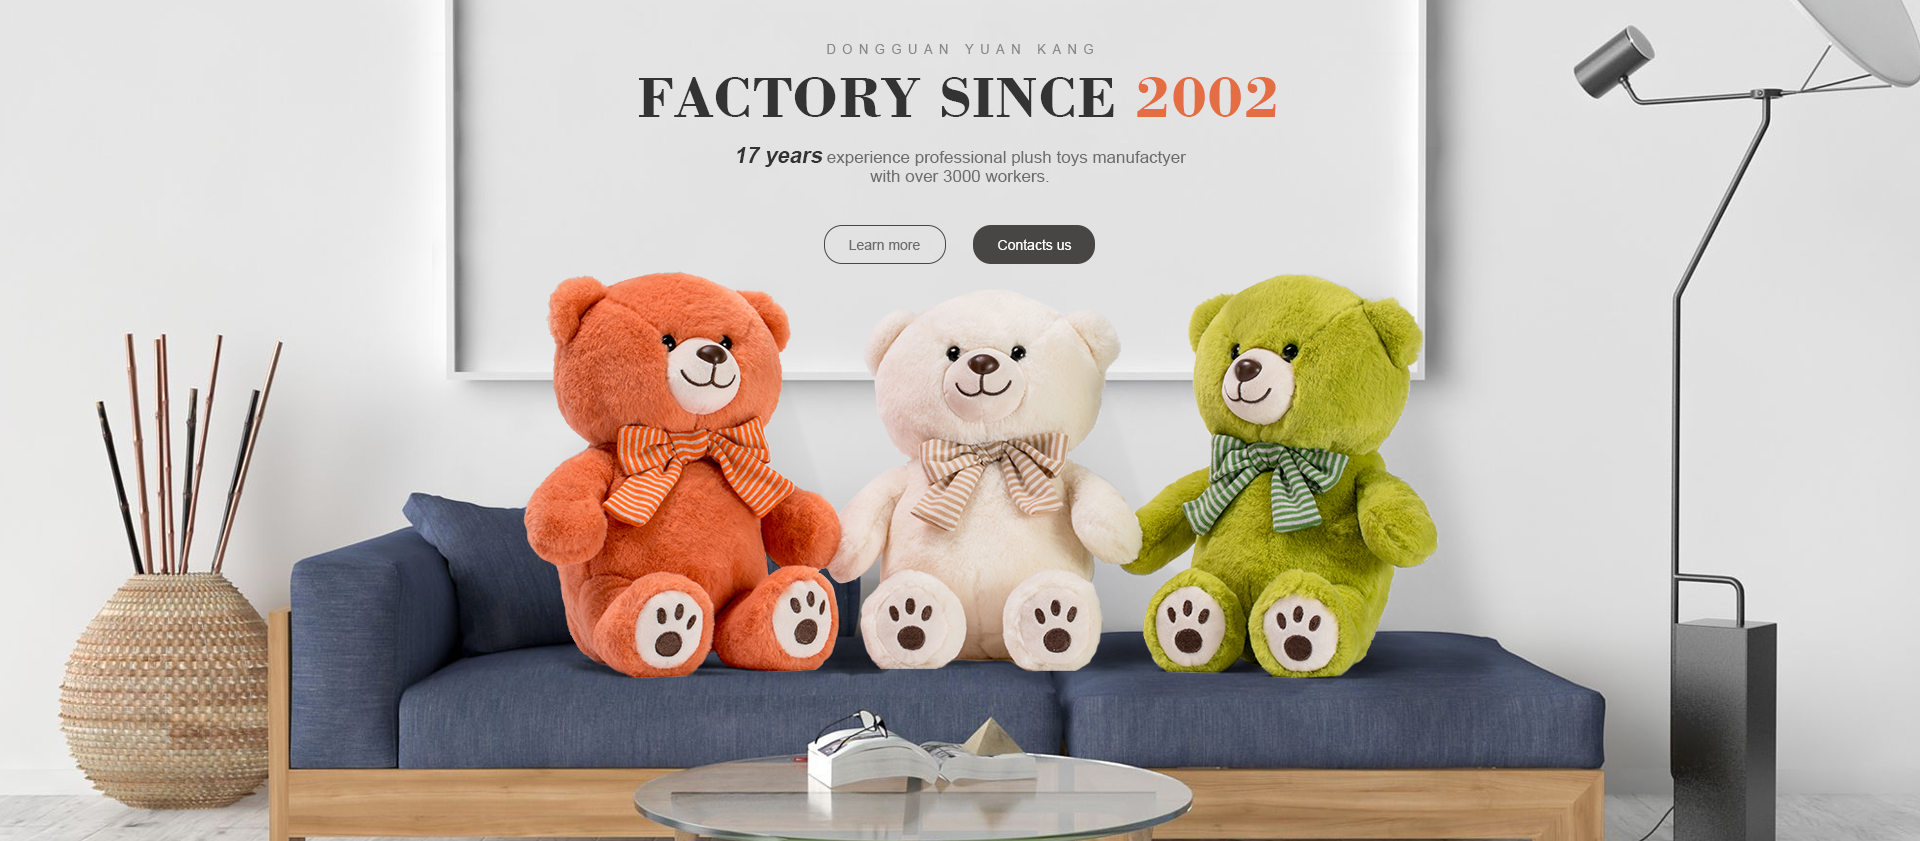 Dongguan Yuan Kang Plush Toys Co Ltd Plush Toy